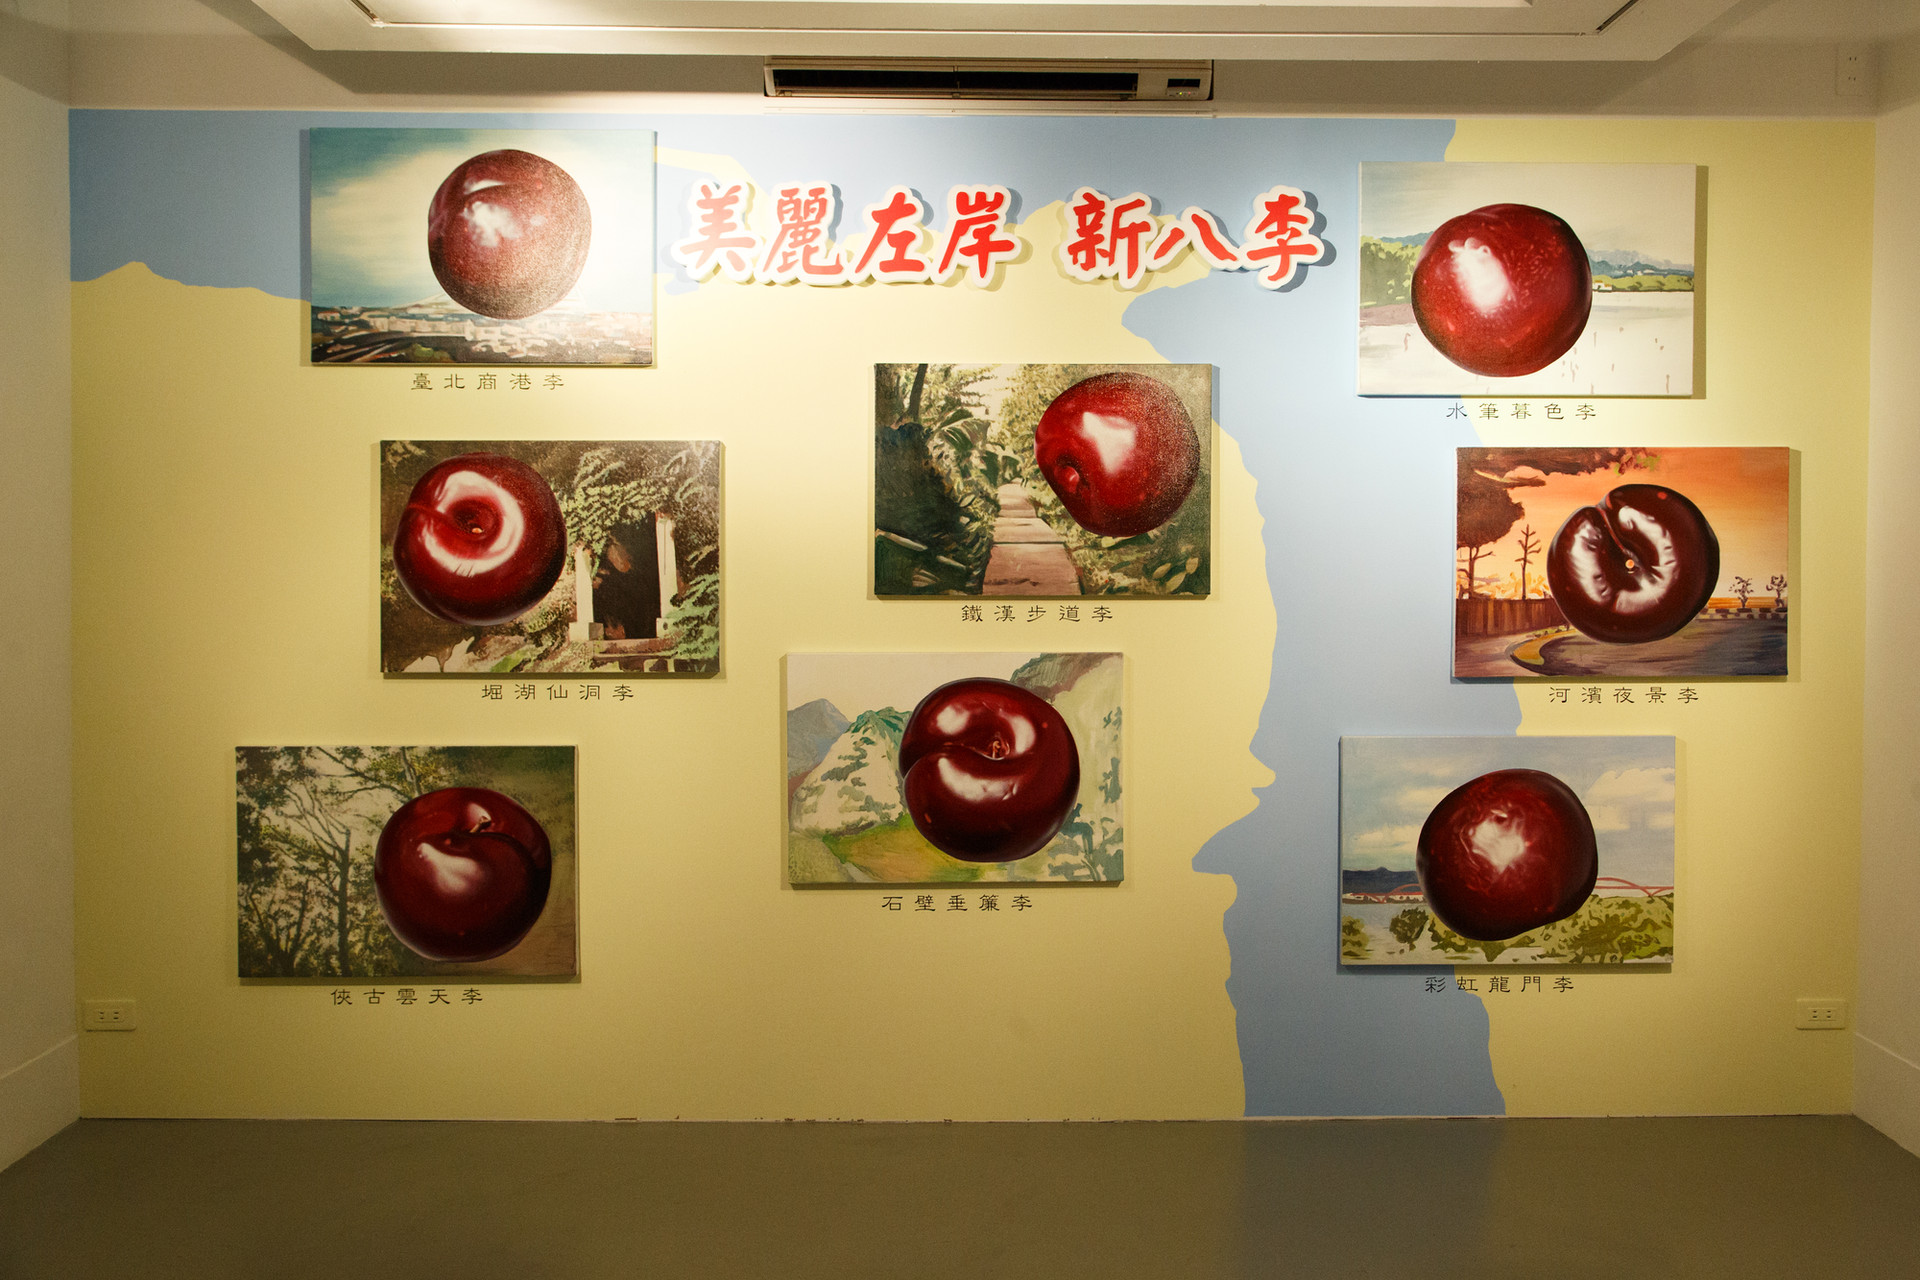 美麗左岸新八李 / Beautiful Left Bank of New Eight Plums